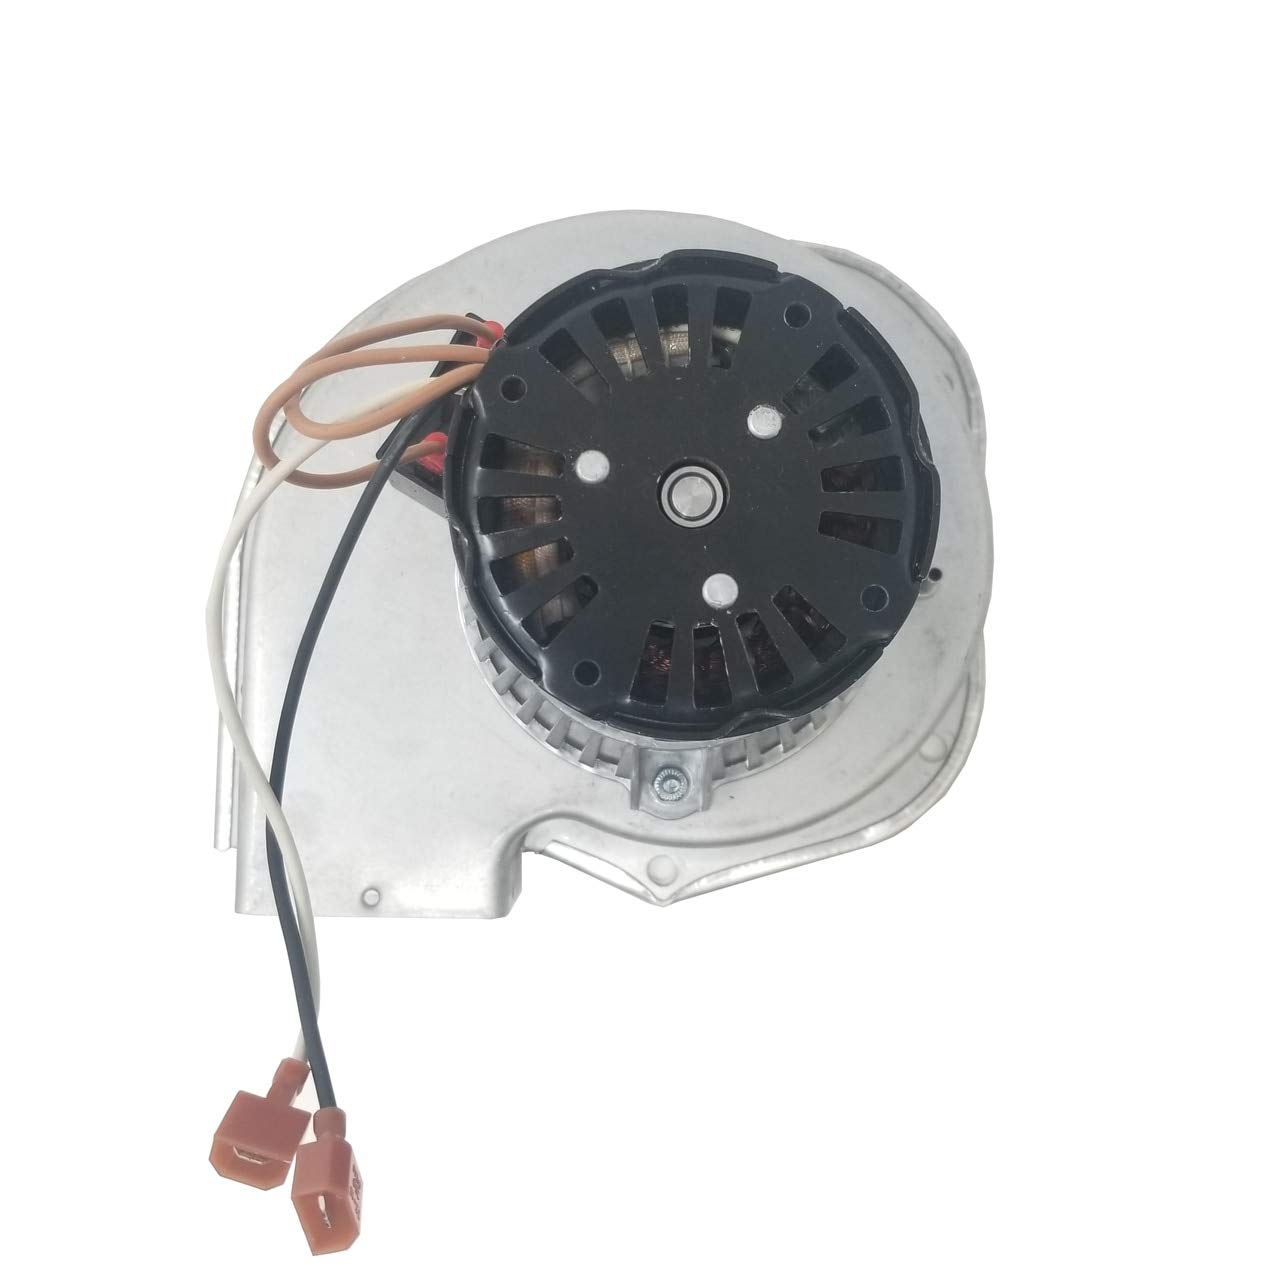 3.3 Inch Diameter Permanent Split Capacitor Centrifugal Blower | Replaces: Fasco A241 & Rheem/Ruud 7021-9567, 70-23641-81 by P-Tech (Image #6)